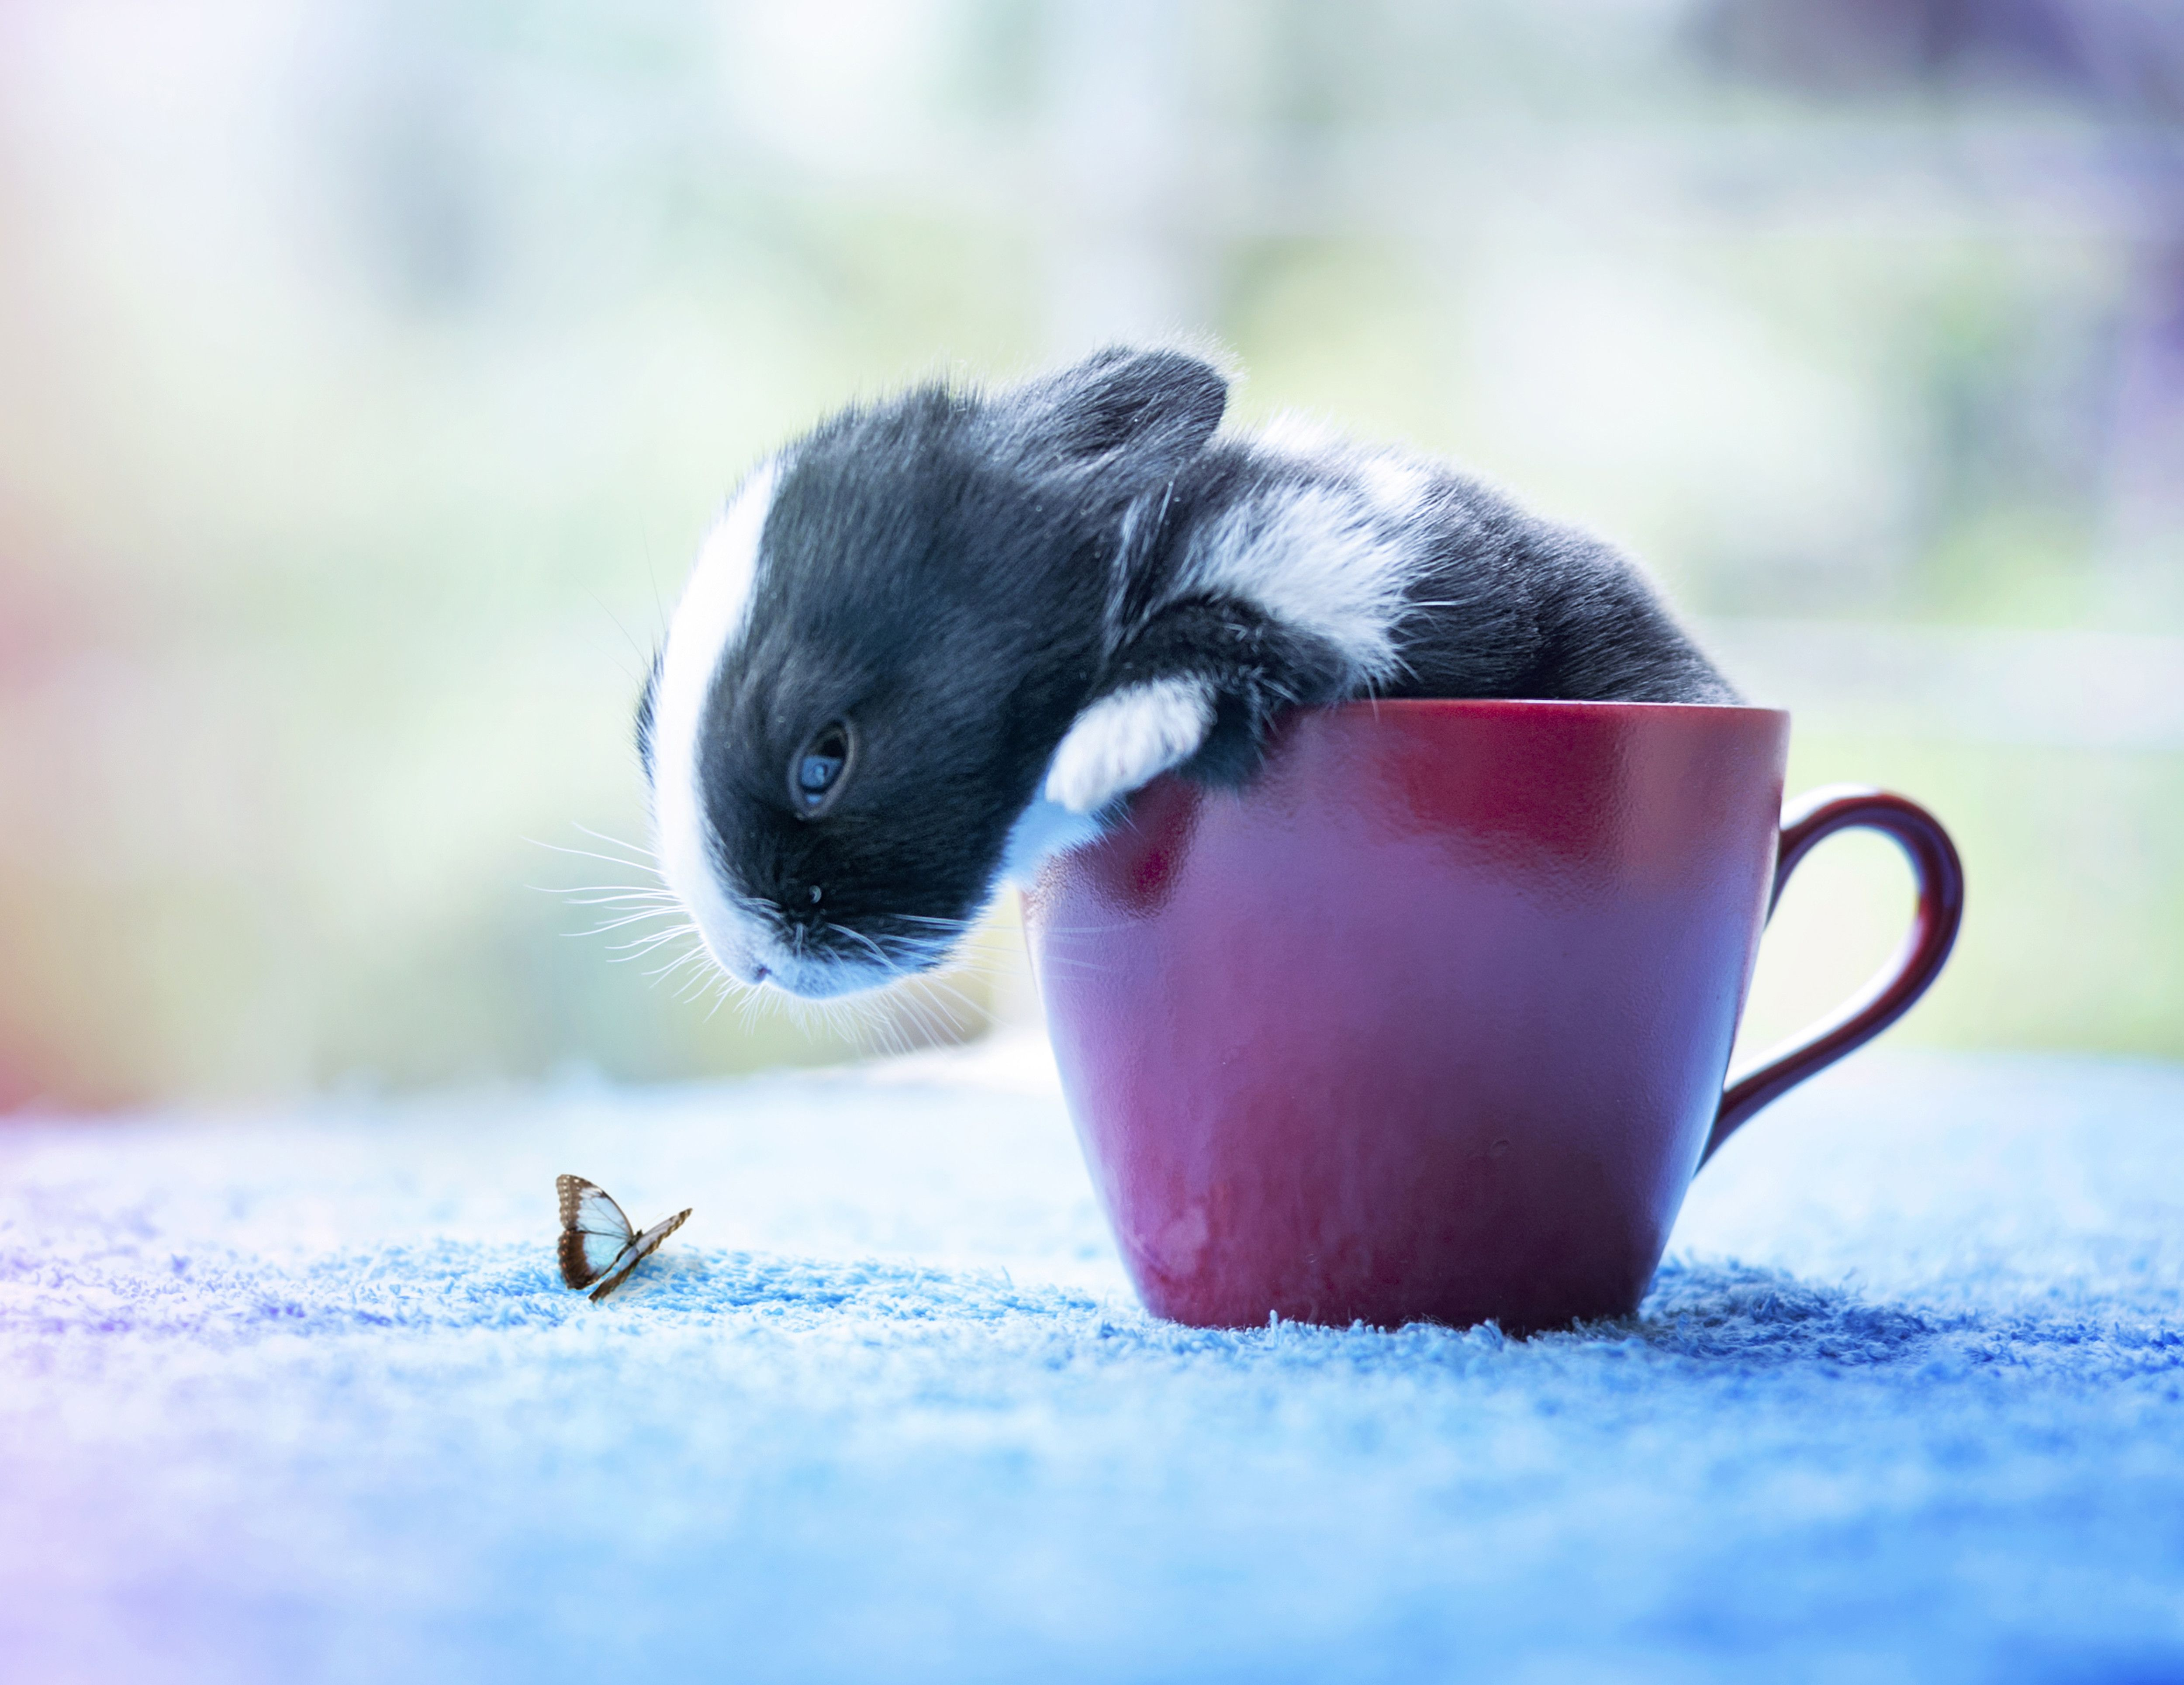 Thursday's Awesomeness: Watch This Bunny Grow!